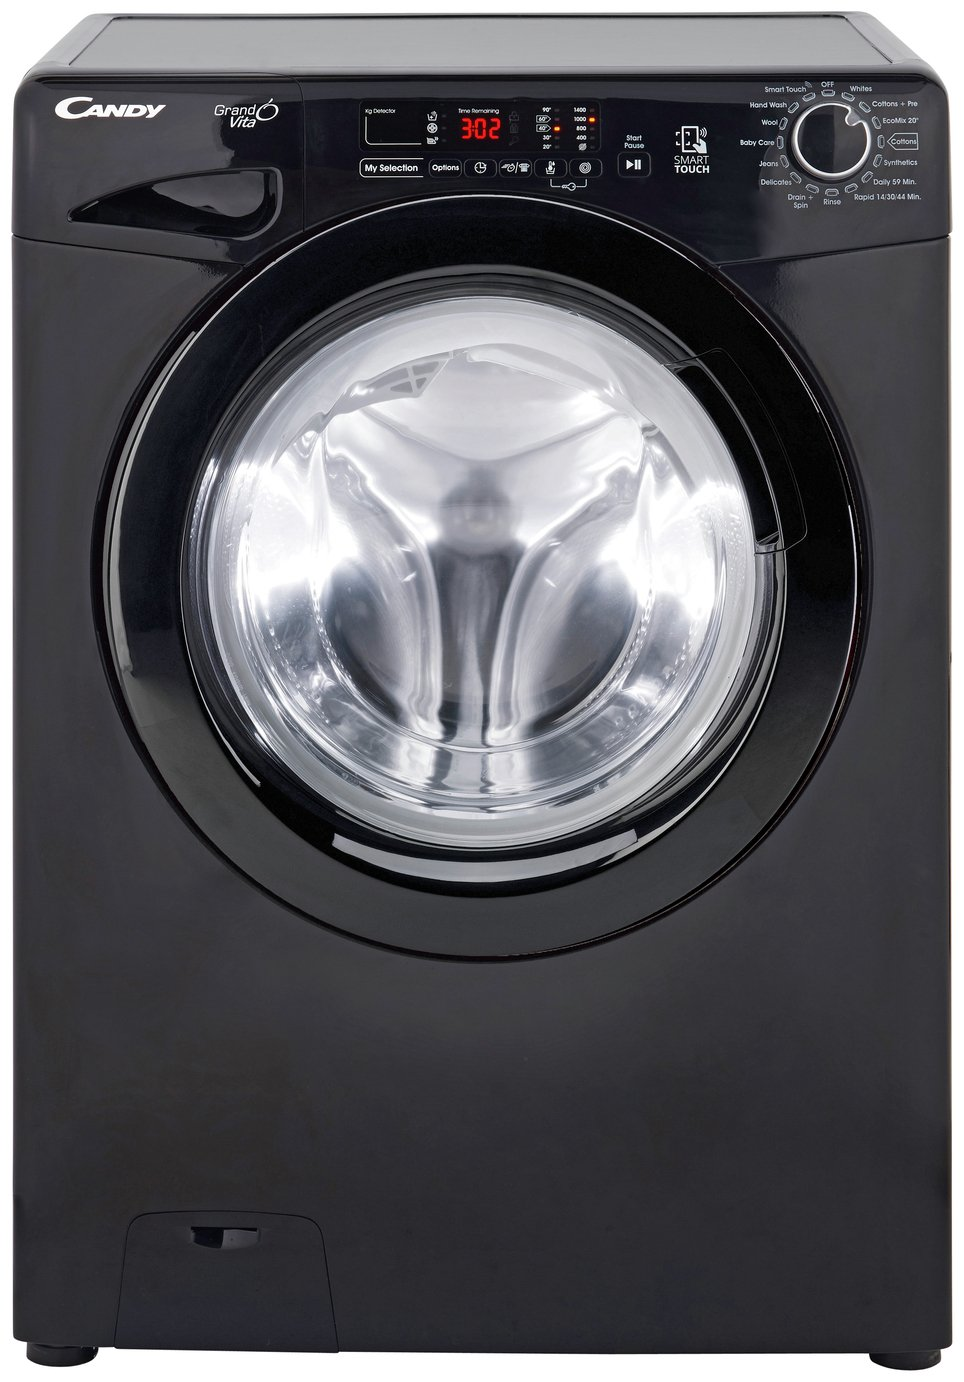 Candy GVS128D3B 8KG 1200 Spin Washing Machine - Black Best Price, Cheapest Prices